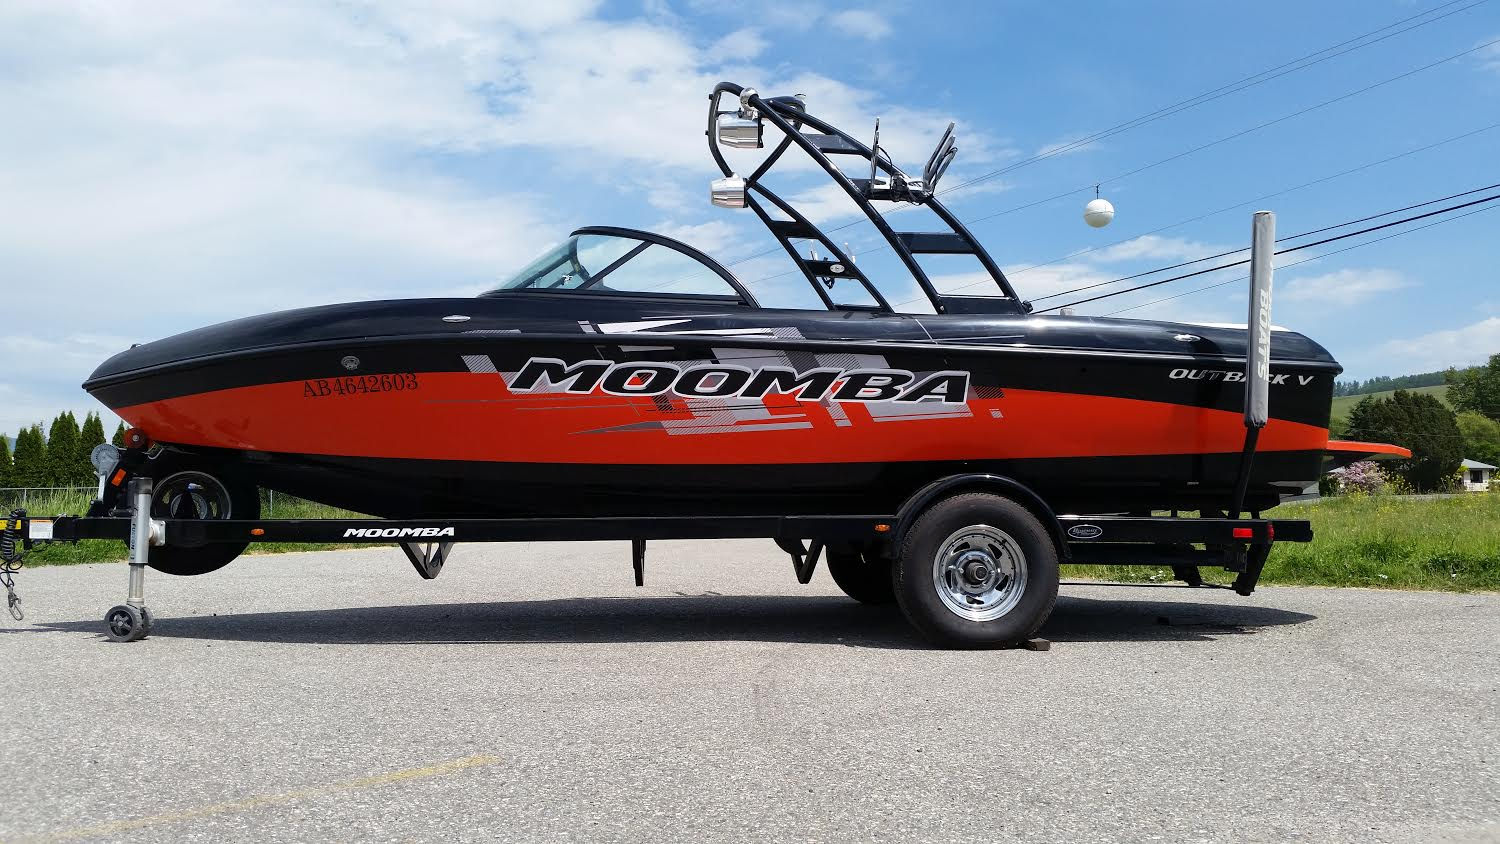 Moomba Outback V Surf Boat available to rent at Okanagan Recreational Rentals.